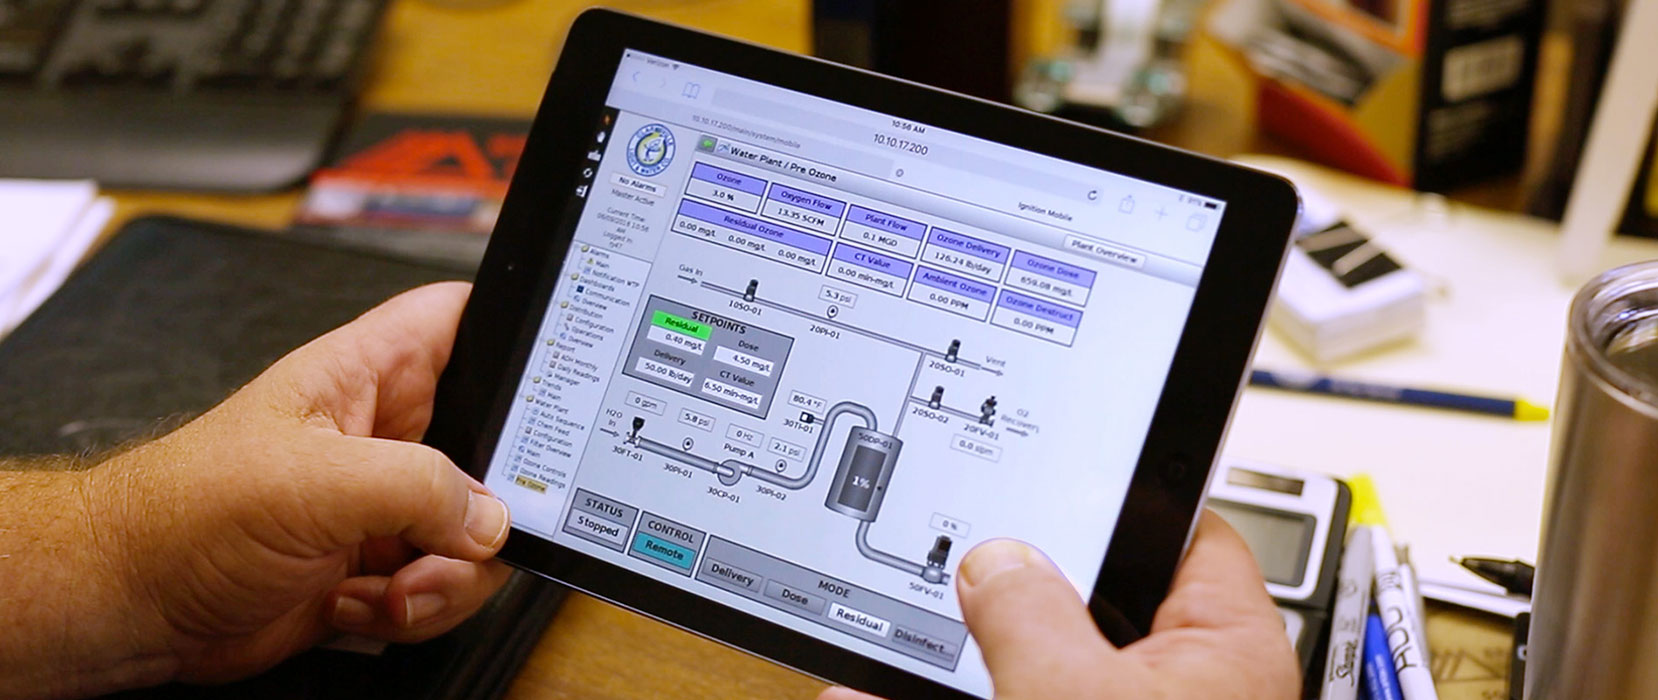 What is SCADA? Supervisory Control and Data Acquisition